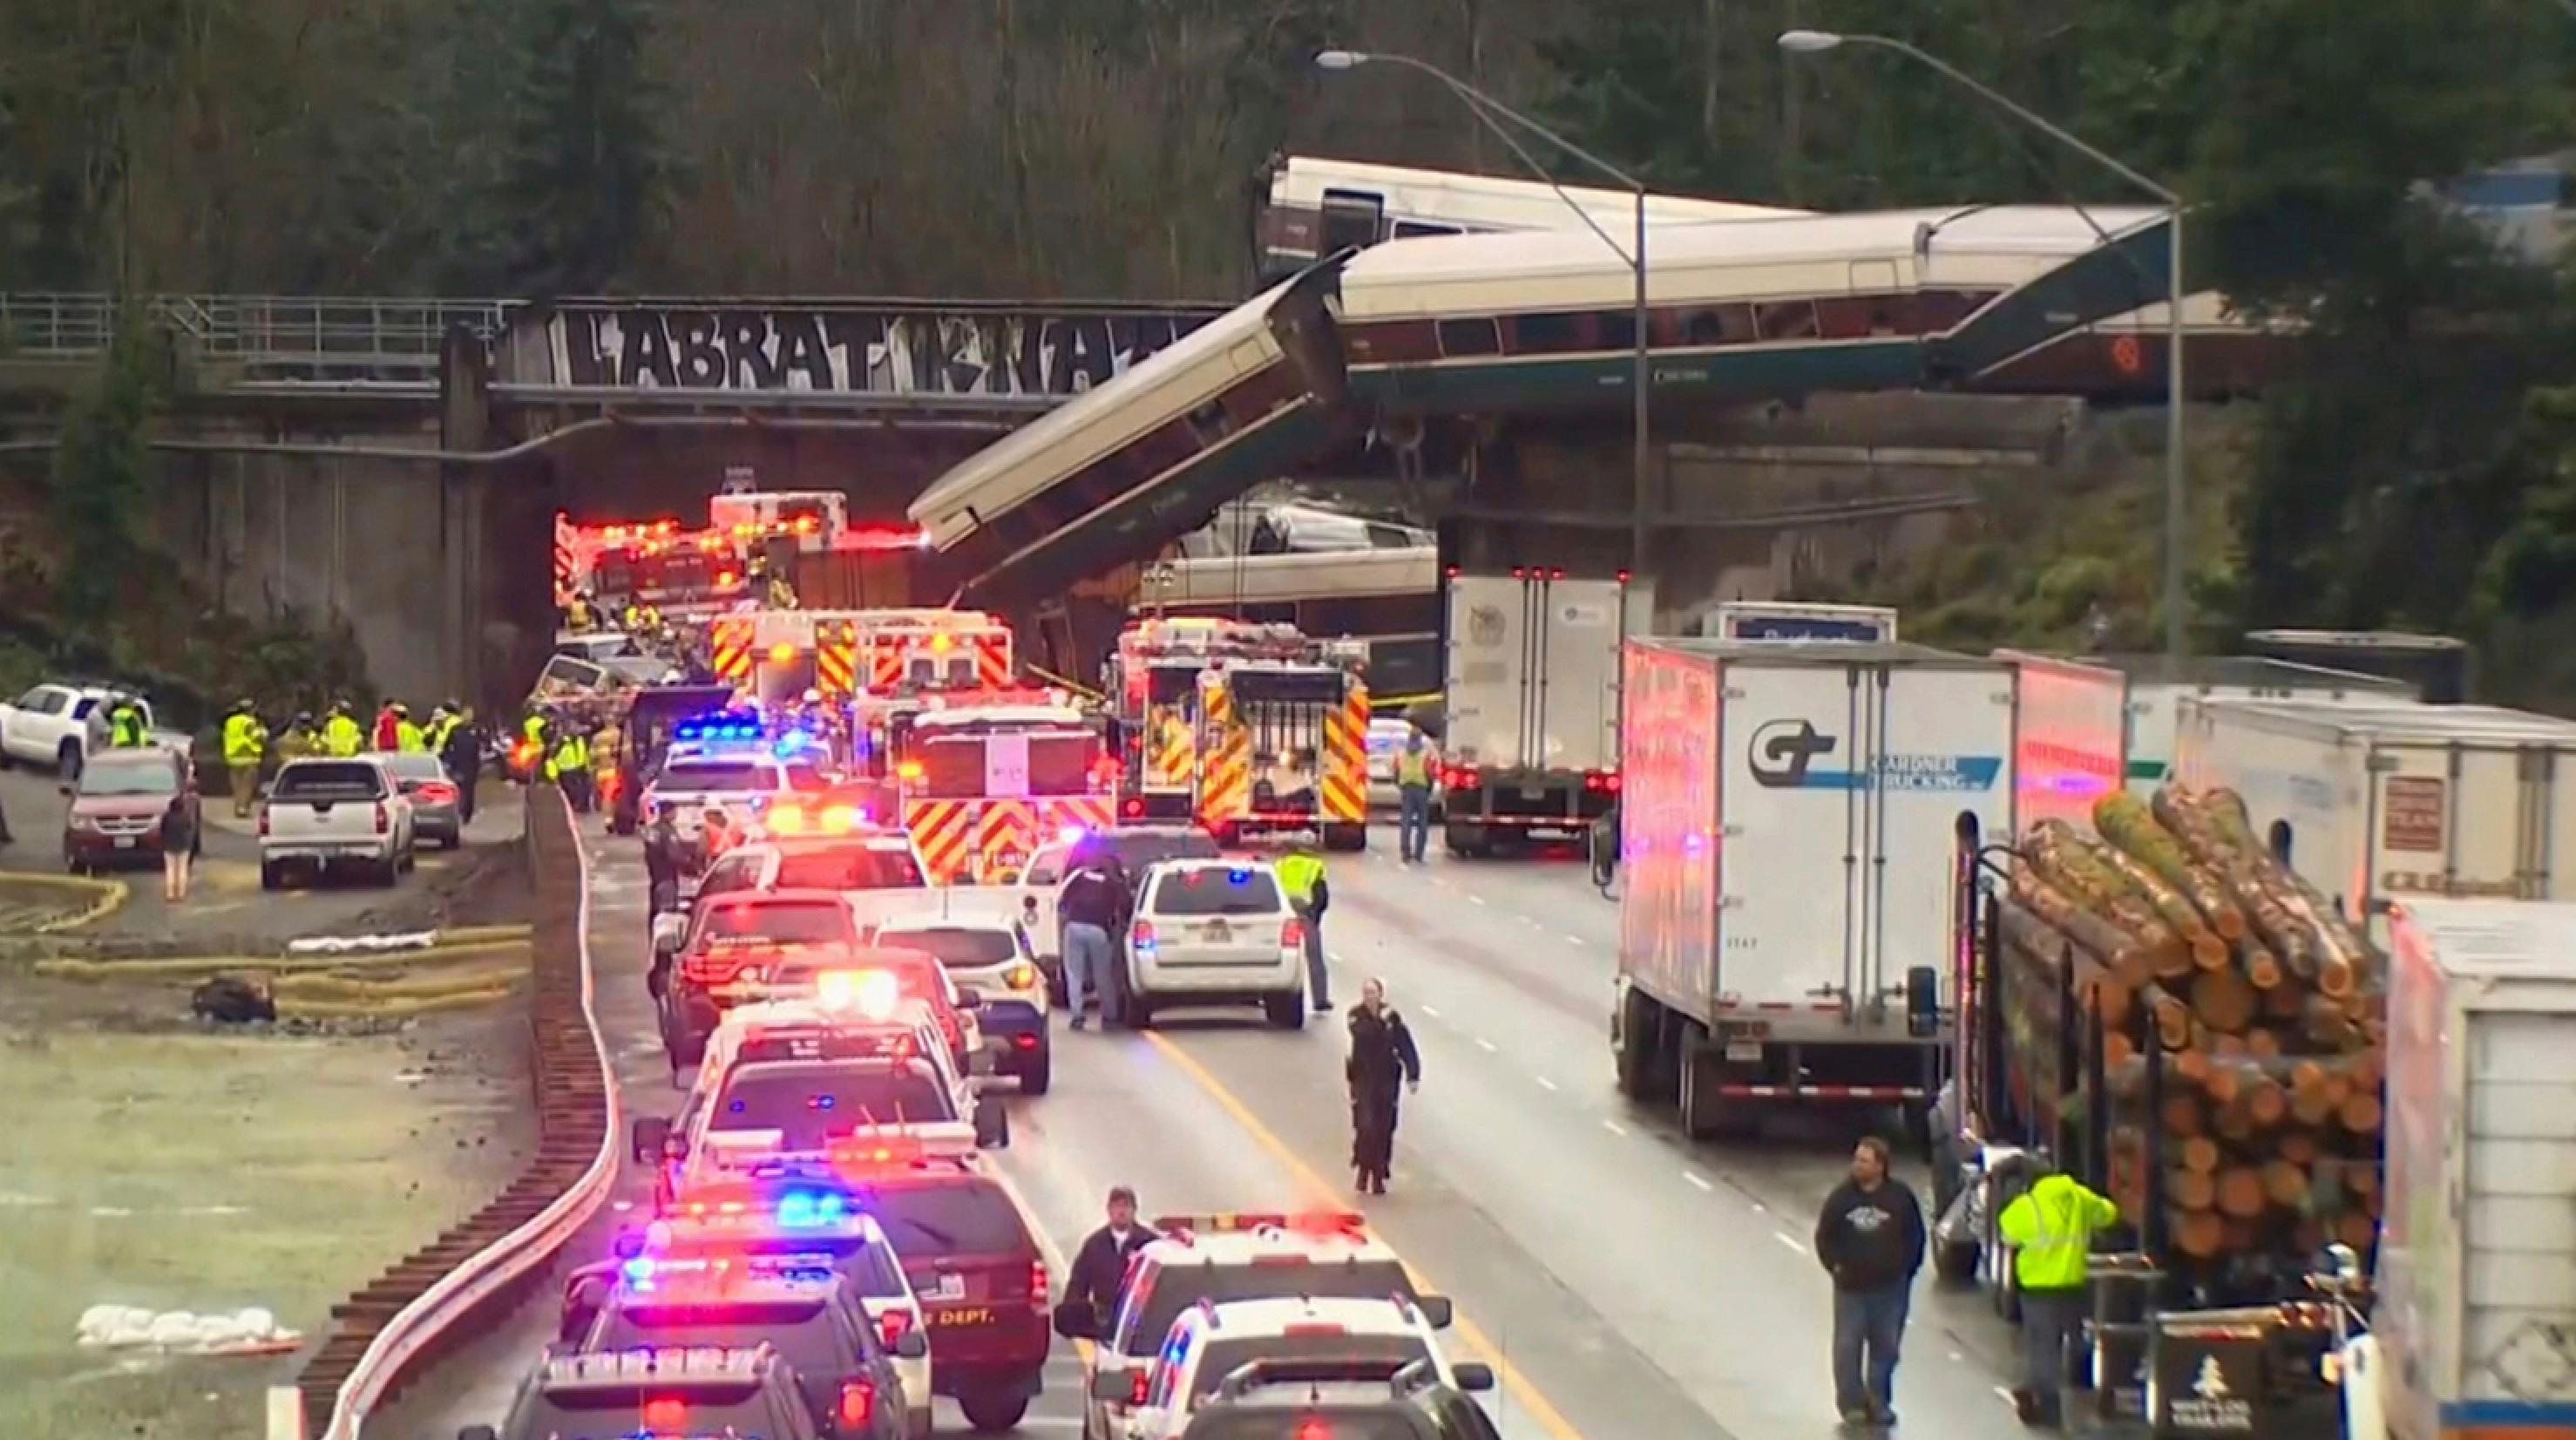 "In this still frame from video provided by KOMO-TV, first responders at the site of an Amtrak train that derailed south of Seattle on Monday, Dec. 18, 2017. Authorities reported ""injuries and casualties."" The train derailed about 40 miles (64 kilometers) south of Seattle before 8 a.m., spilling at least one train car on to busy Interstate 5. (KOMO-TV via AP) TV OUT MANDATORY CREDIT"